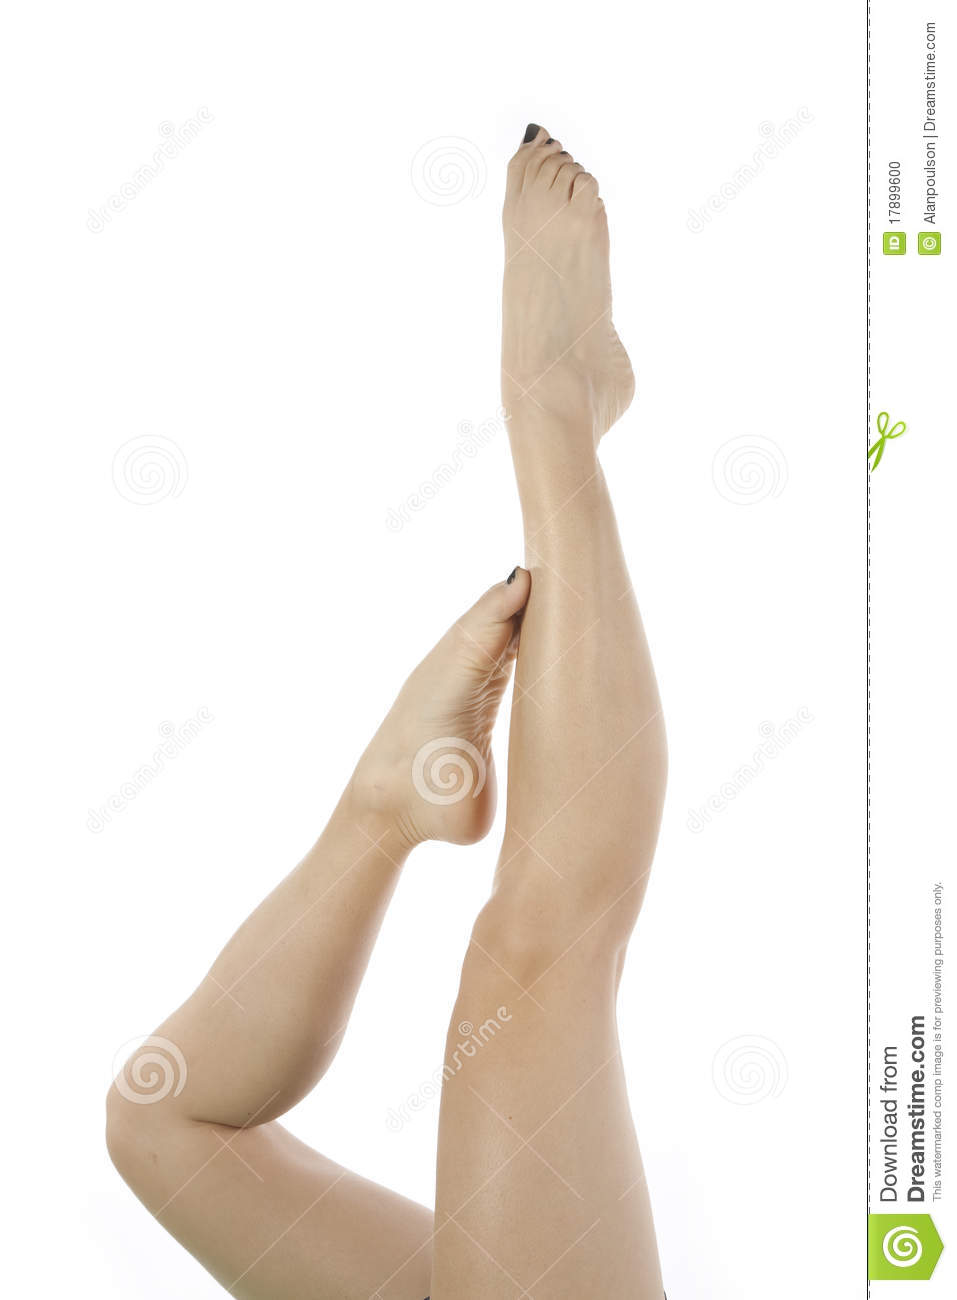 legs-toes-pointed-woman-17899600.jpg